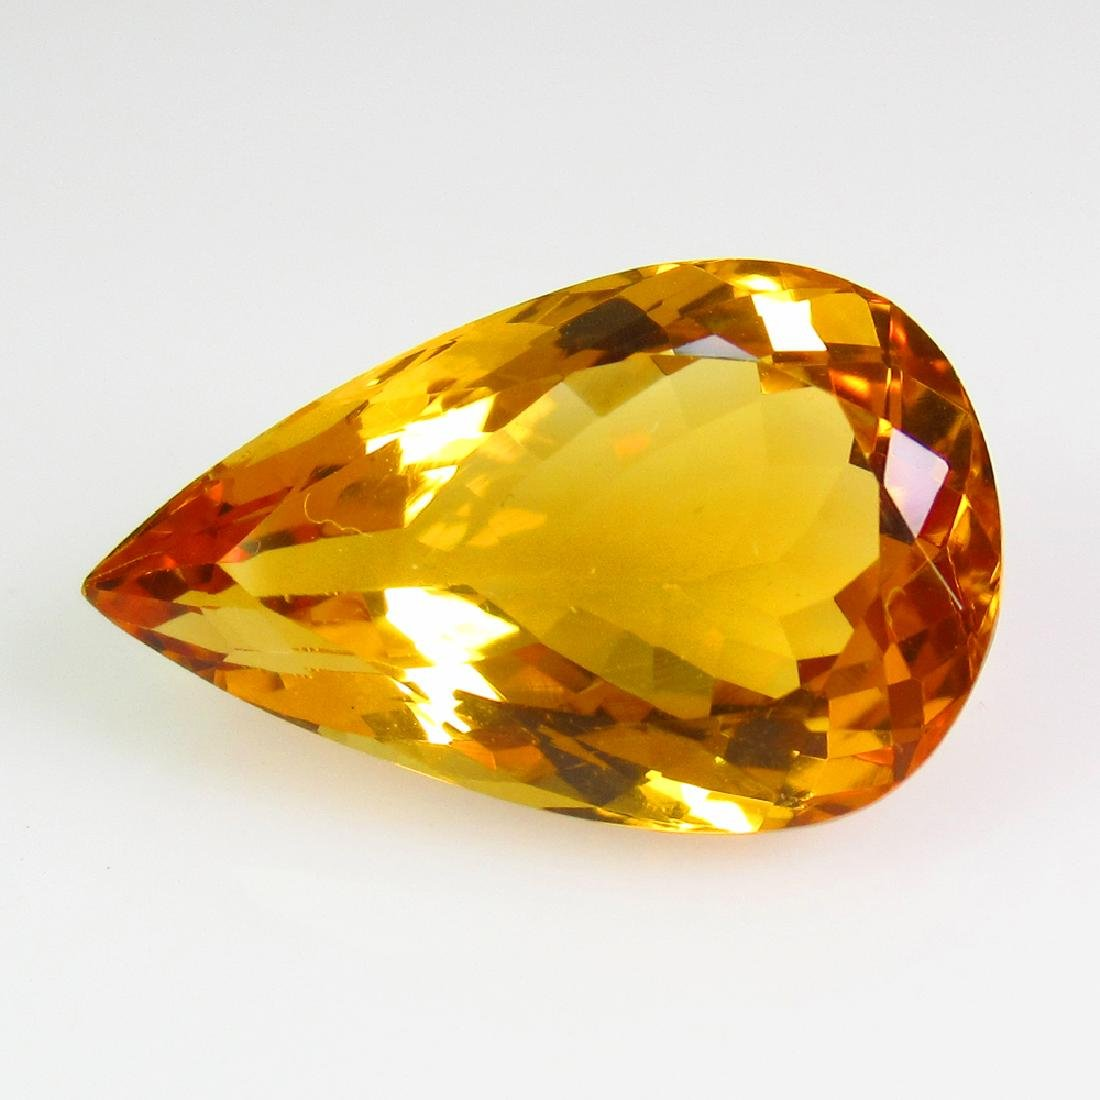 7.60 Ct Genuine Madeira Brandy Yellow Citrine Pear Cut